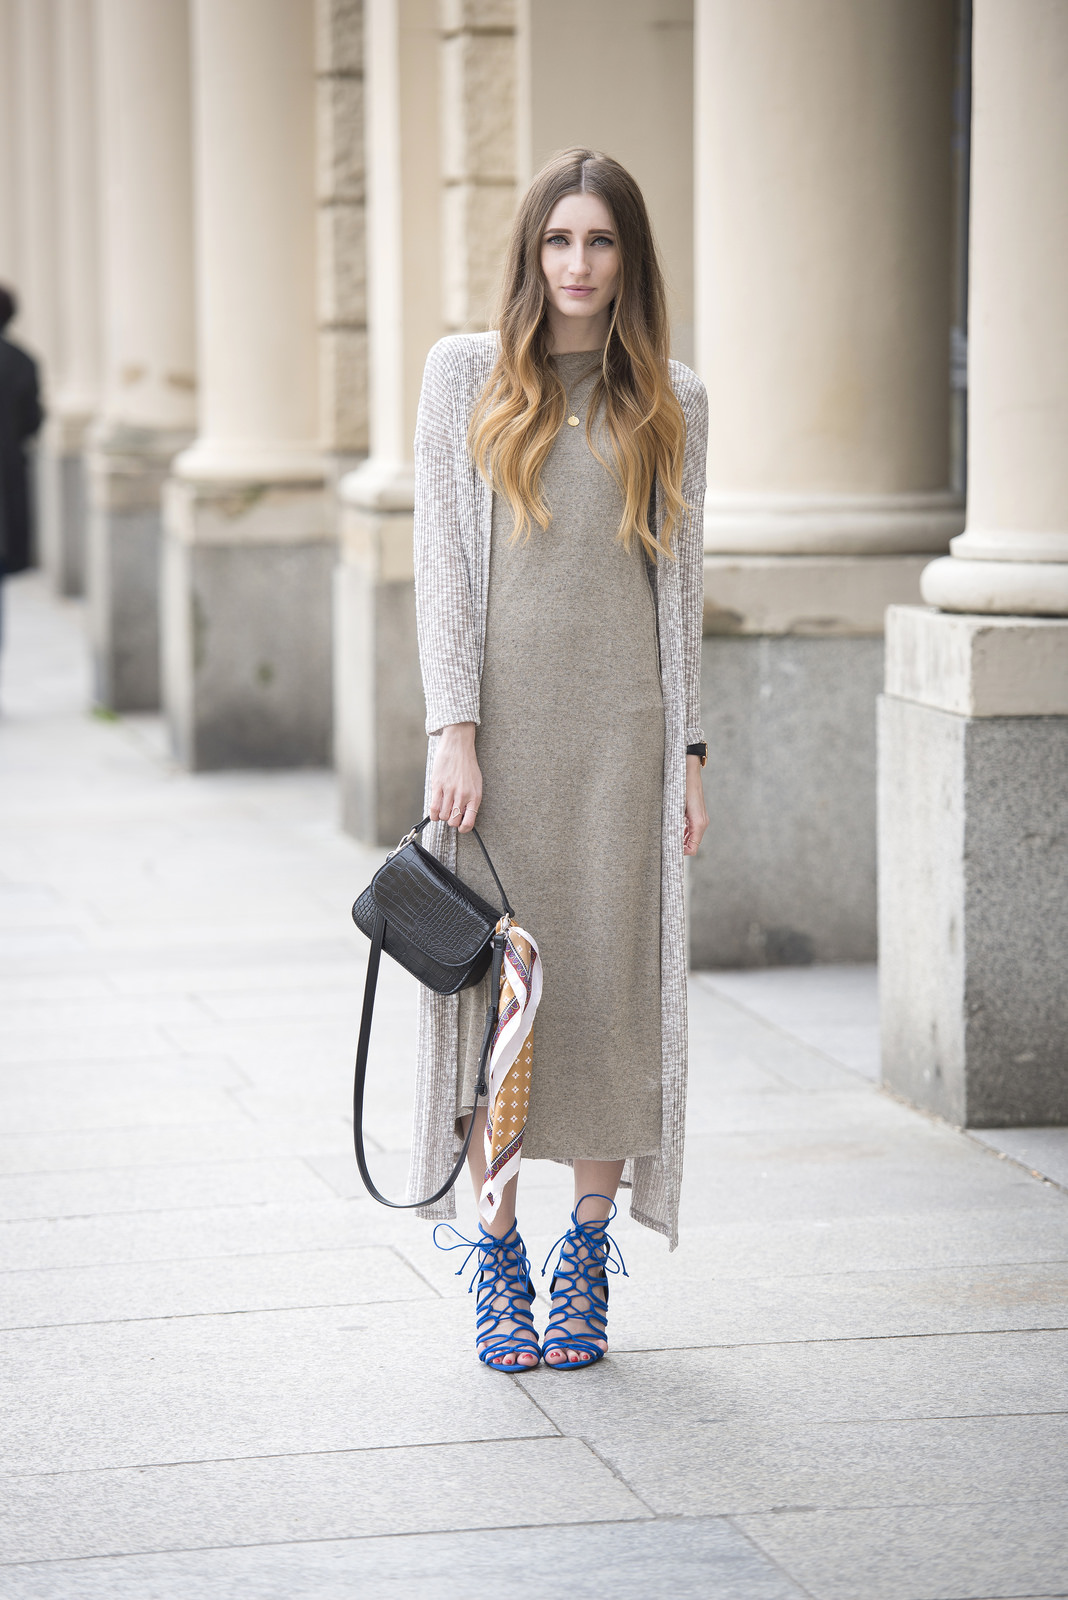 Maxi Dress & Long Cardigan - The L Fashion